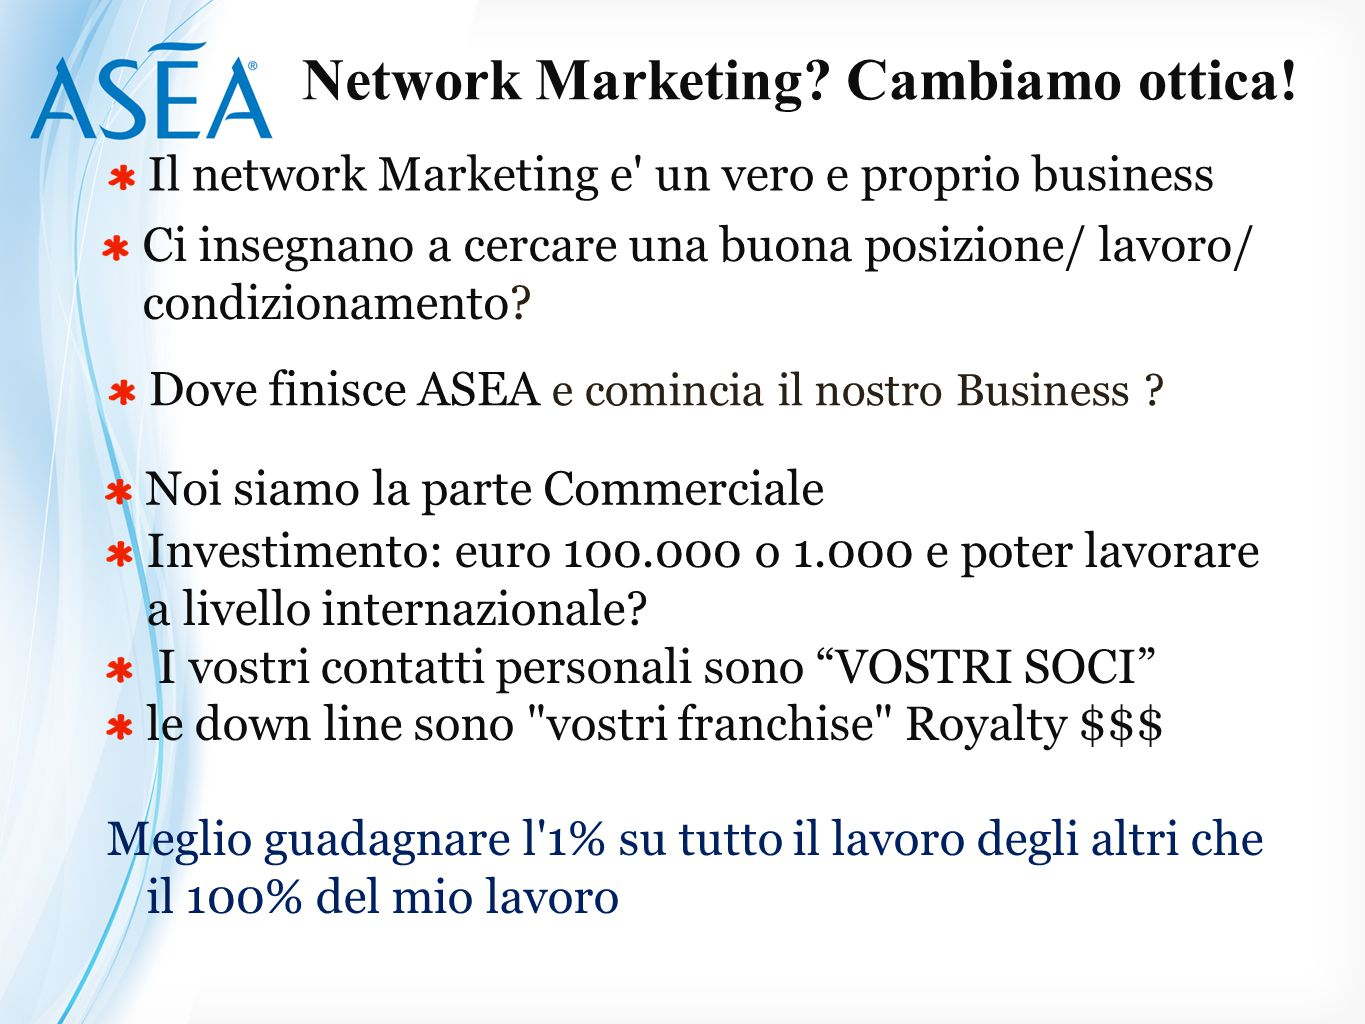 Network Marketing Cambiamo ottica!